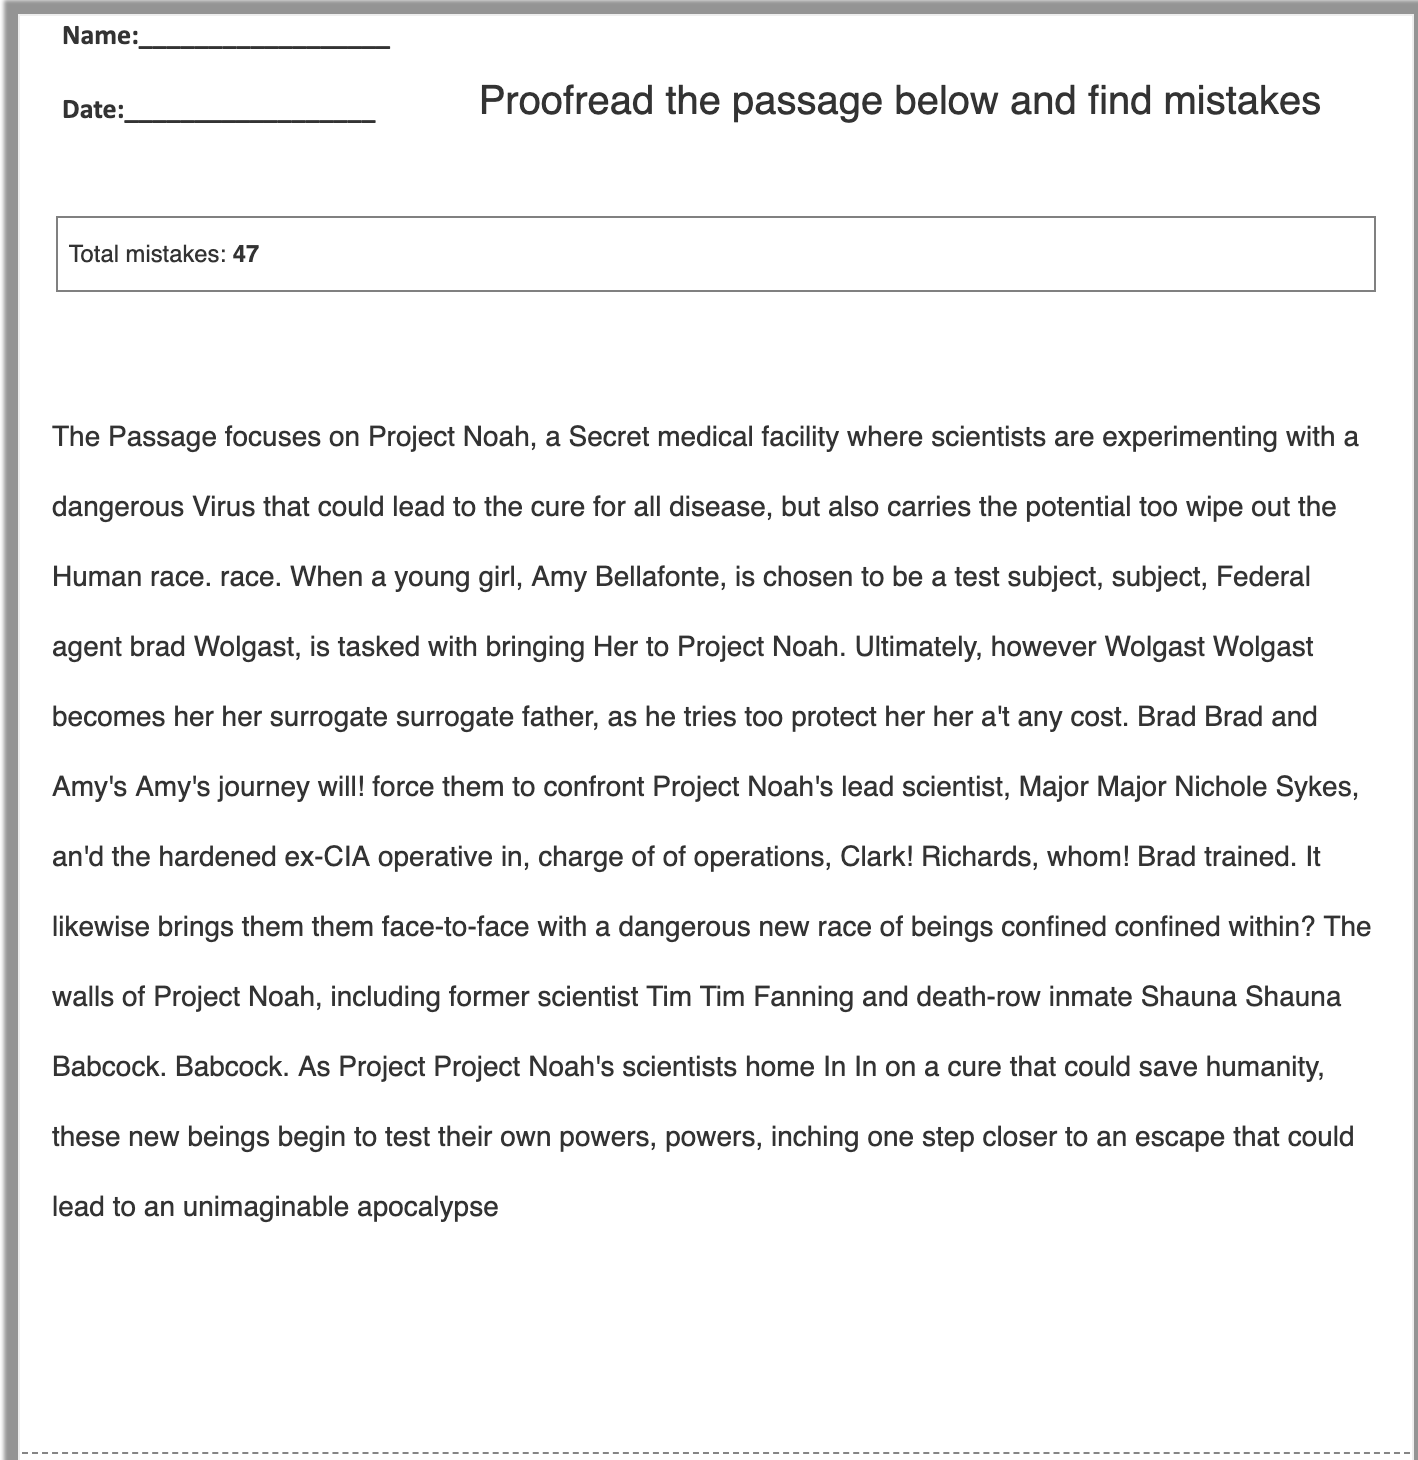 Correcting Mistakes (Proofread) Worksheet Generator